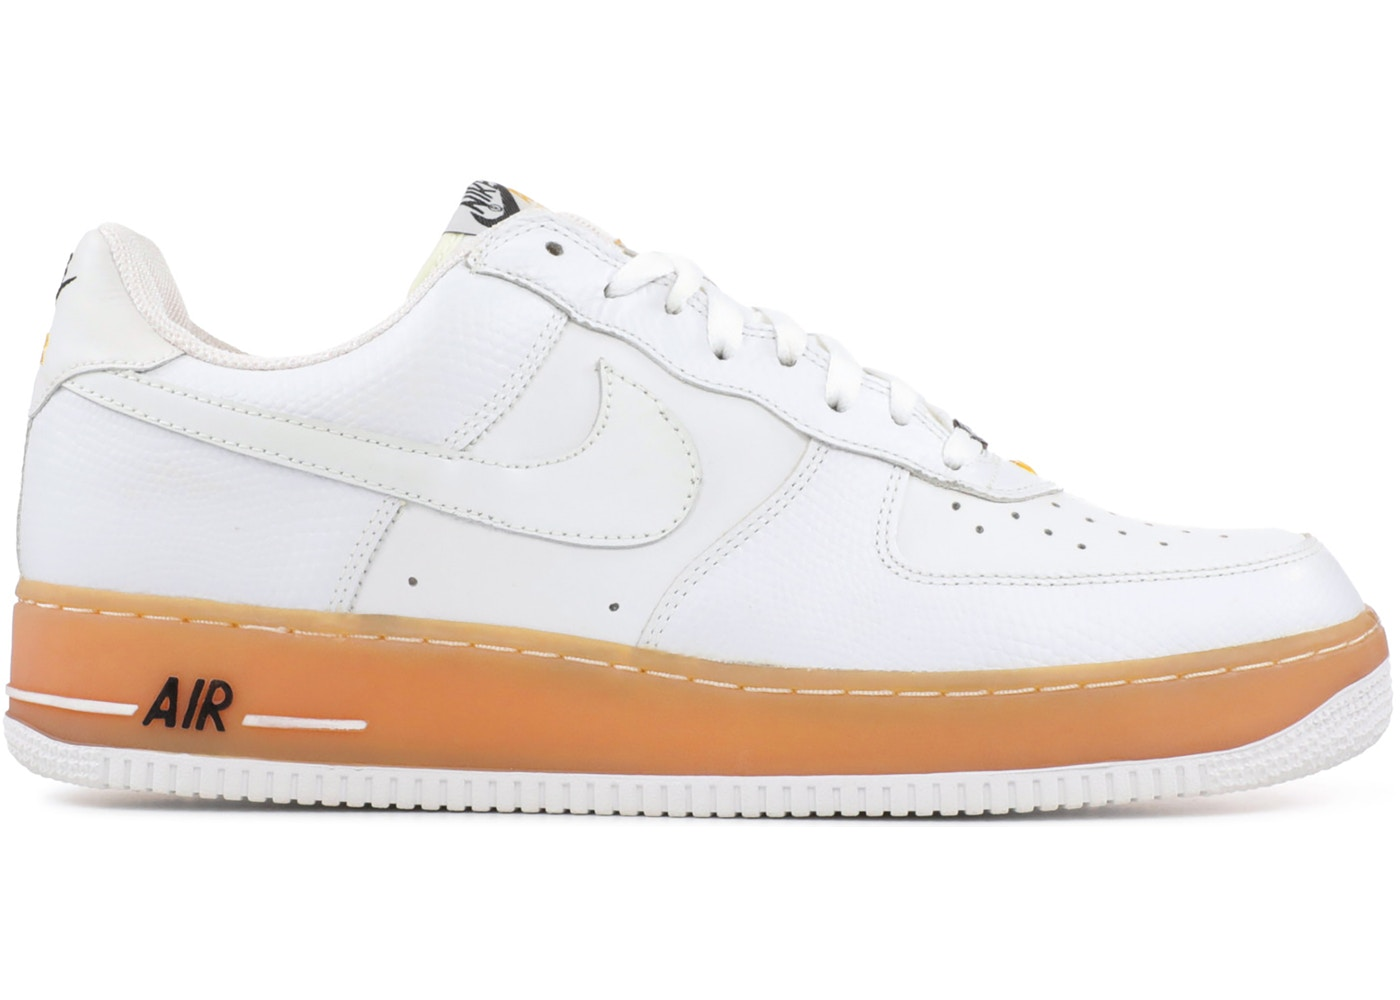 Nike Air Force 1 Low JD Sports White Gum Midsole